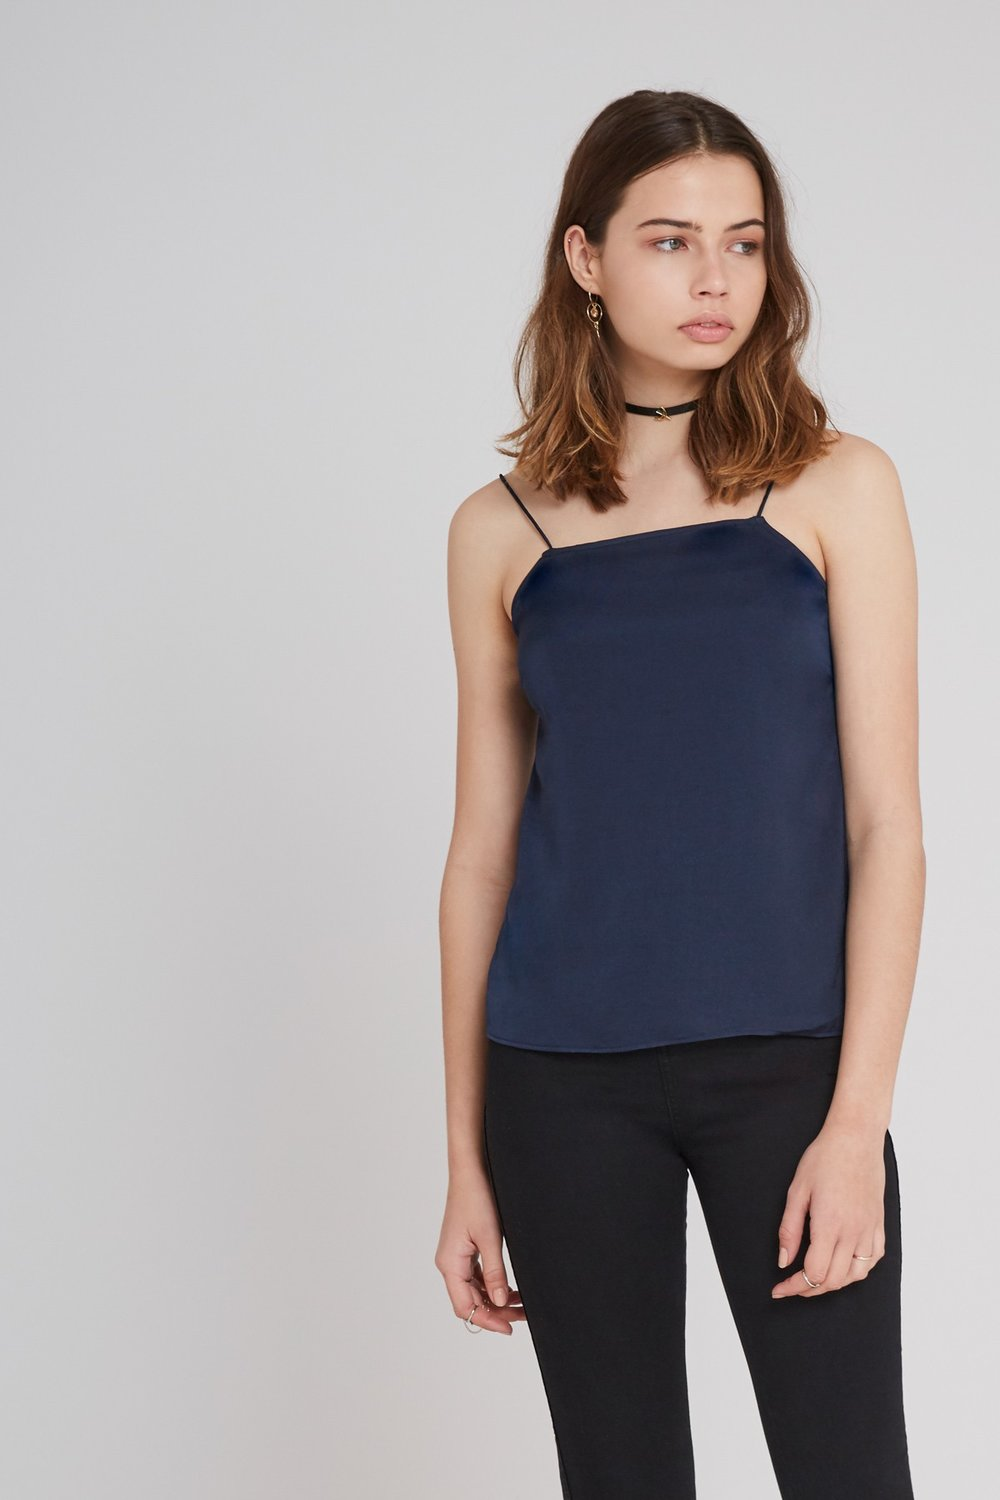 Shop The Fifth The Nightingale Top.